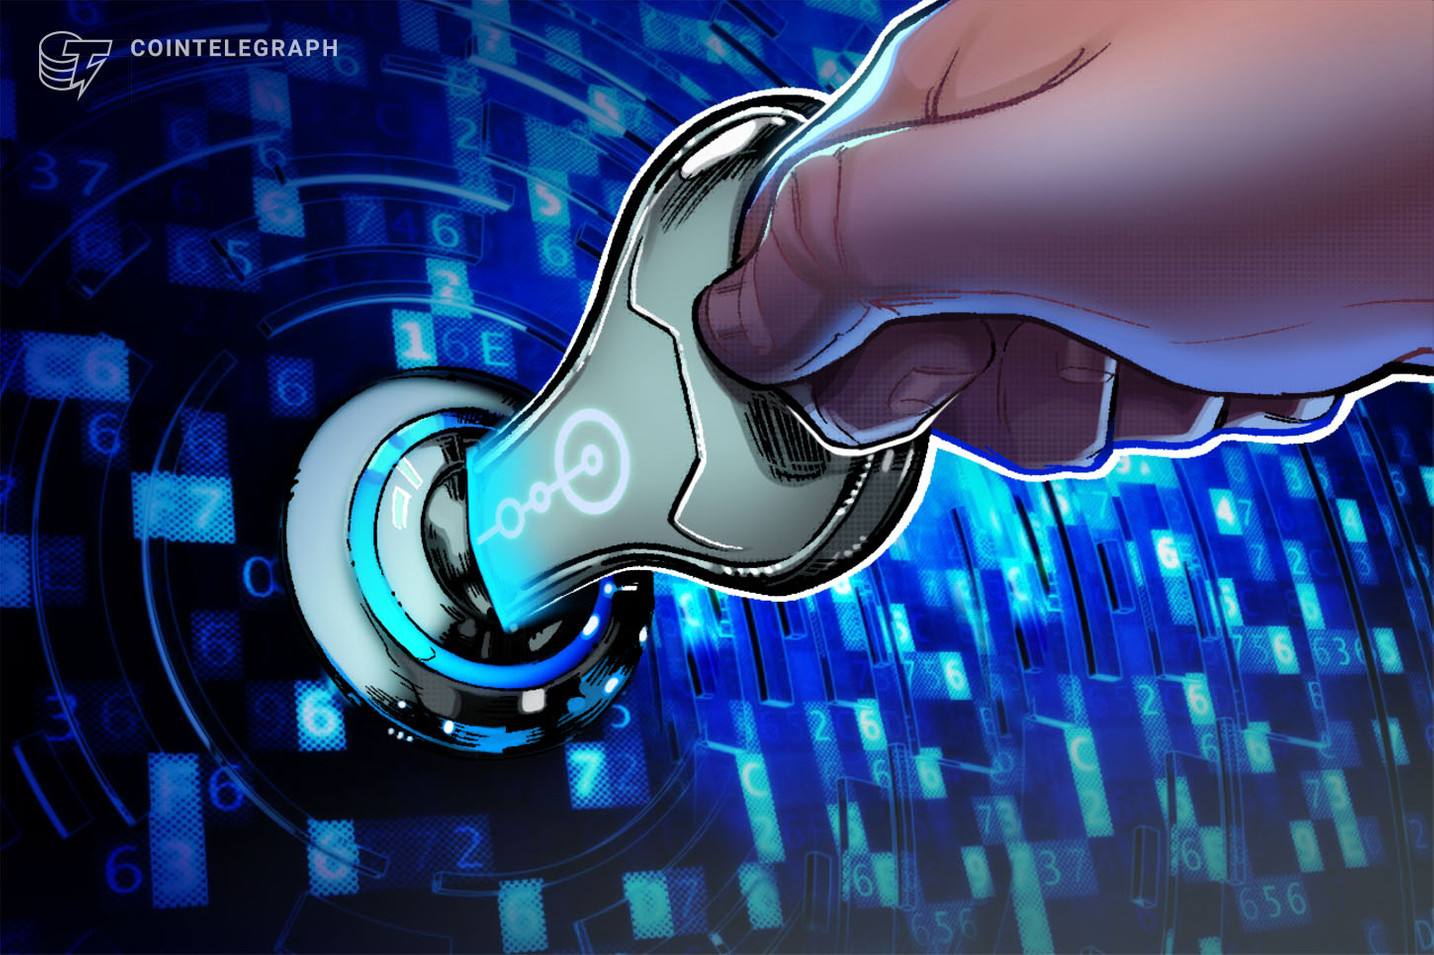 Survey Shows Many BTC Holders Use Hardware Wallet, Have Backup Keys